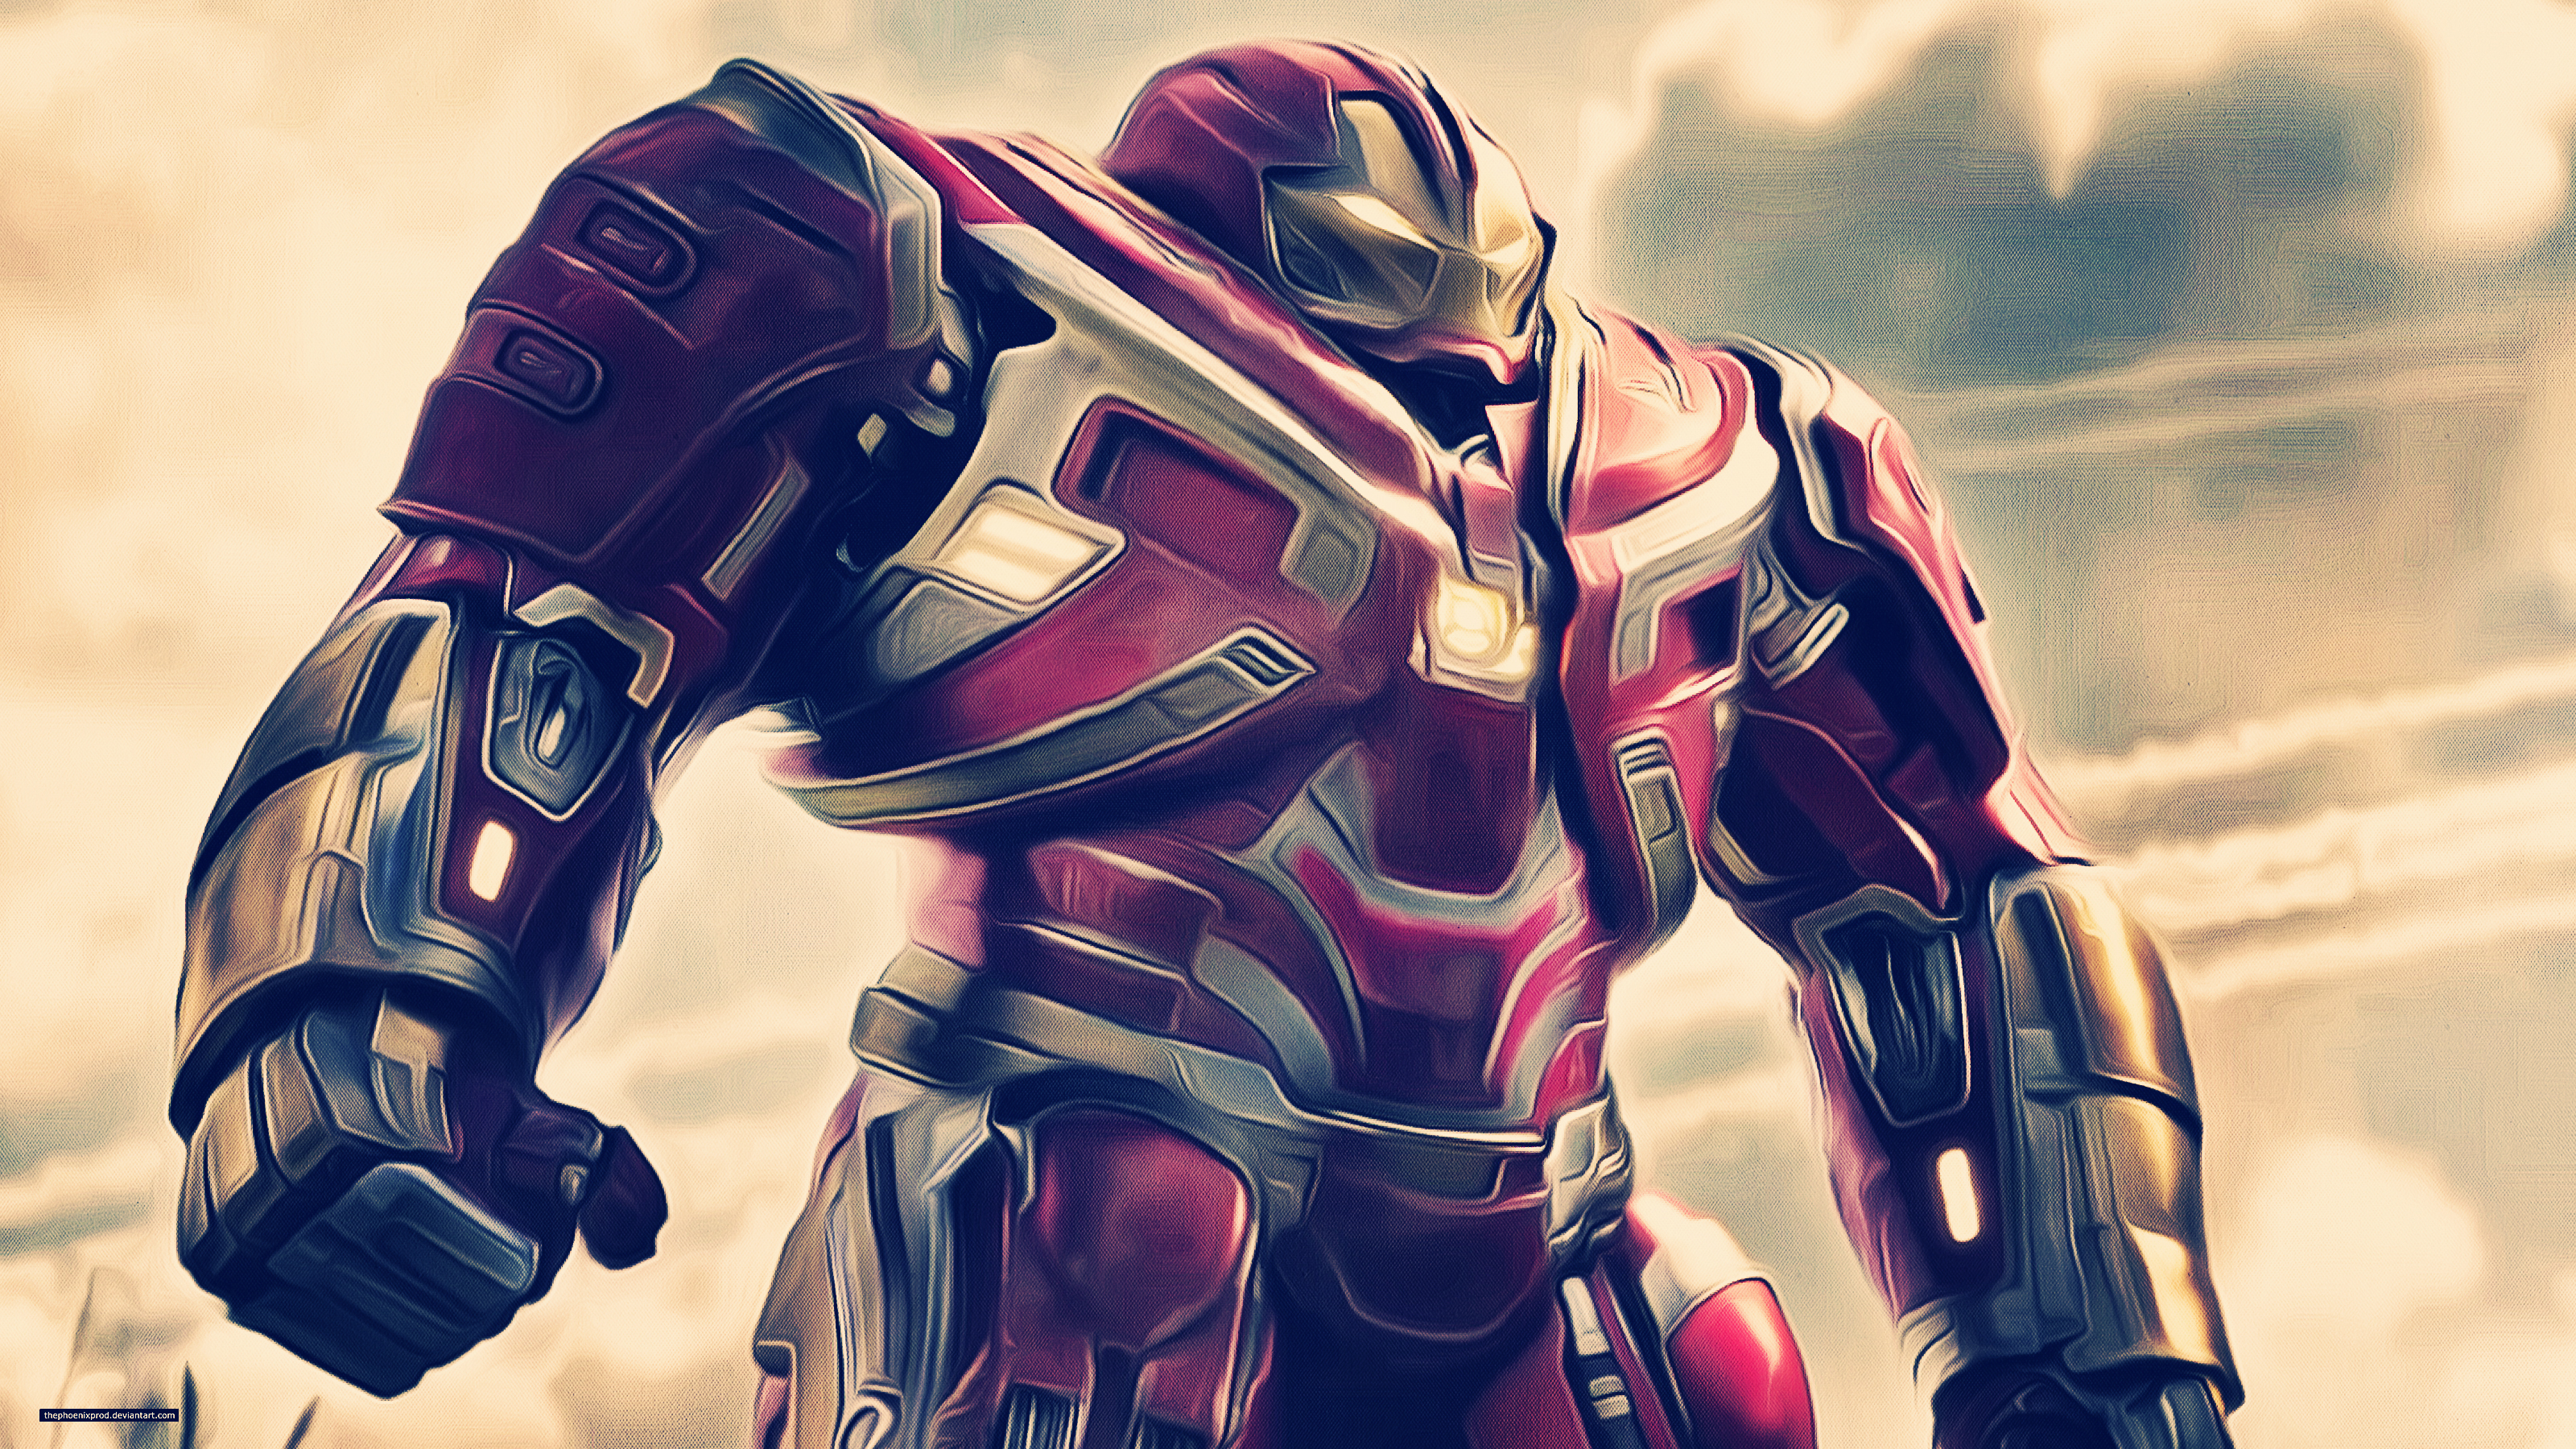 1280x2120 Iron Hulkbuster In Avengers Infinity War 2018 Artwork